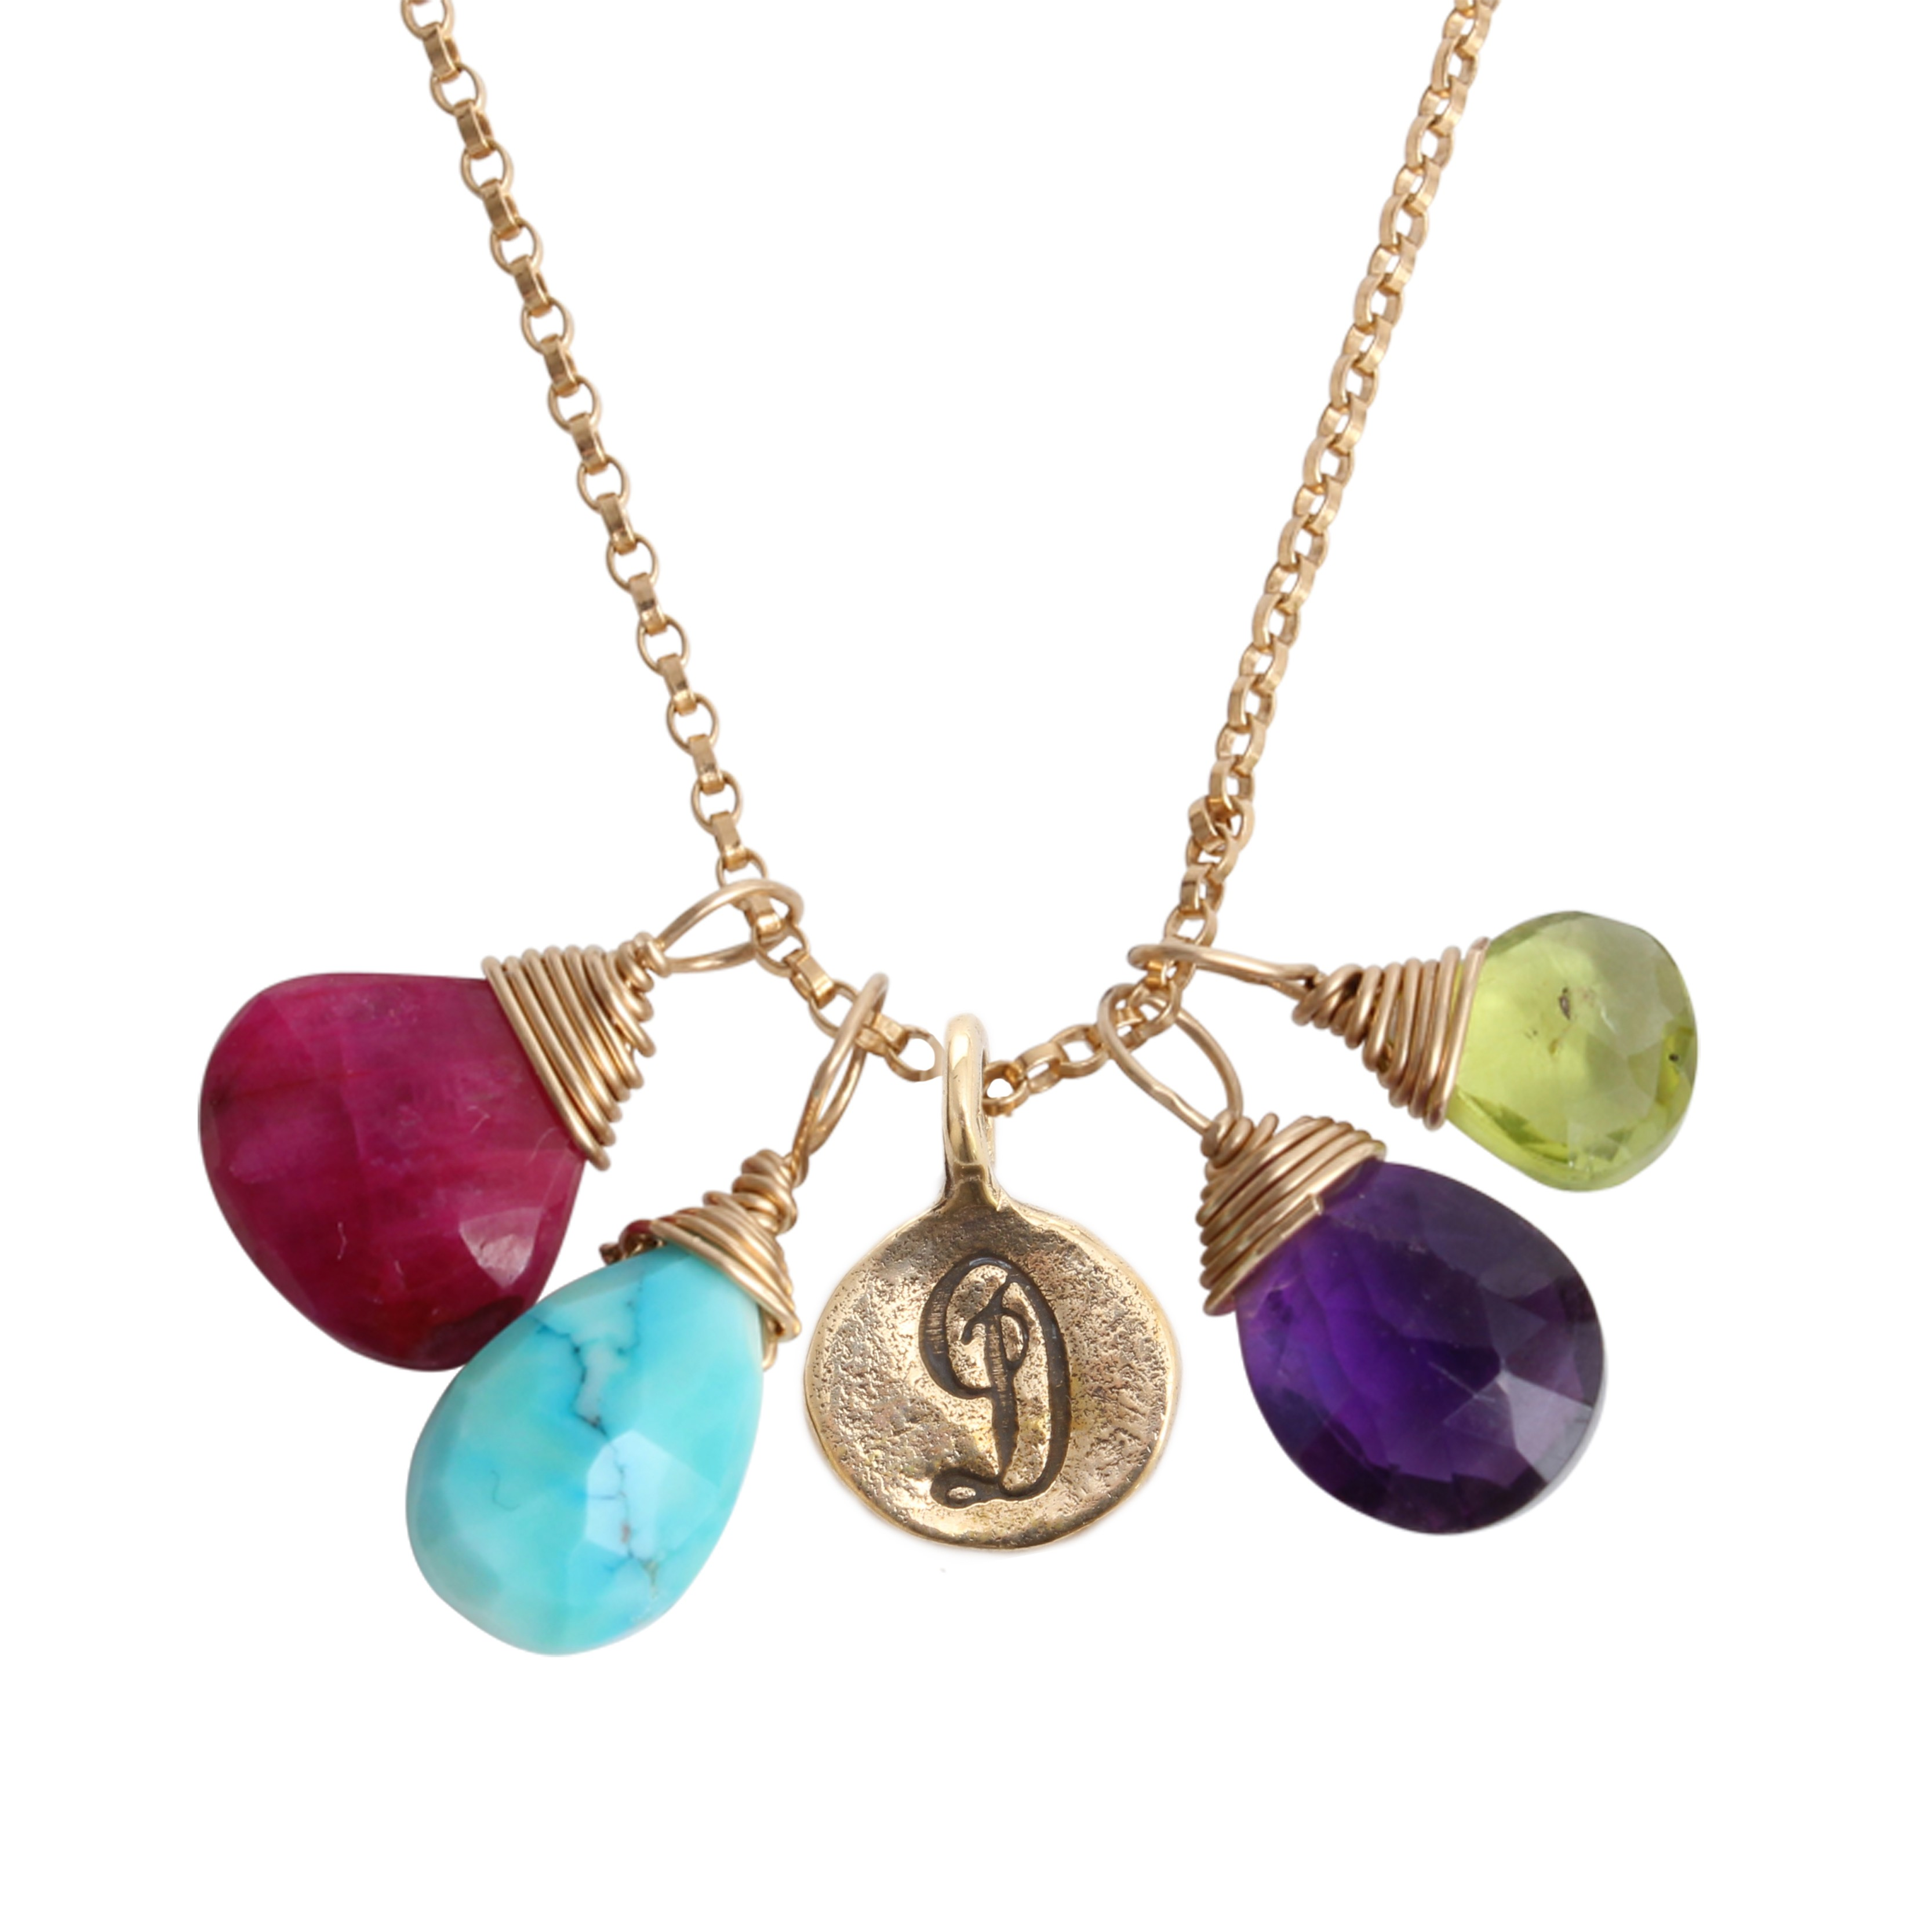 Gold Necklace With Intial Charm And Natural Birthstones Grandmother S